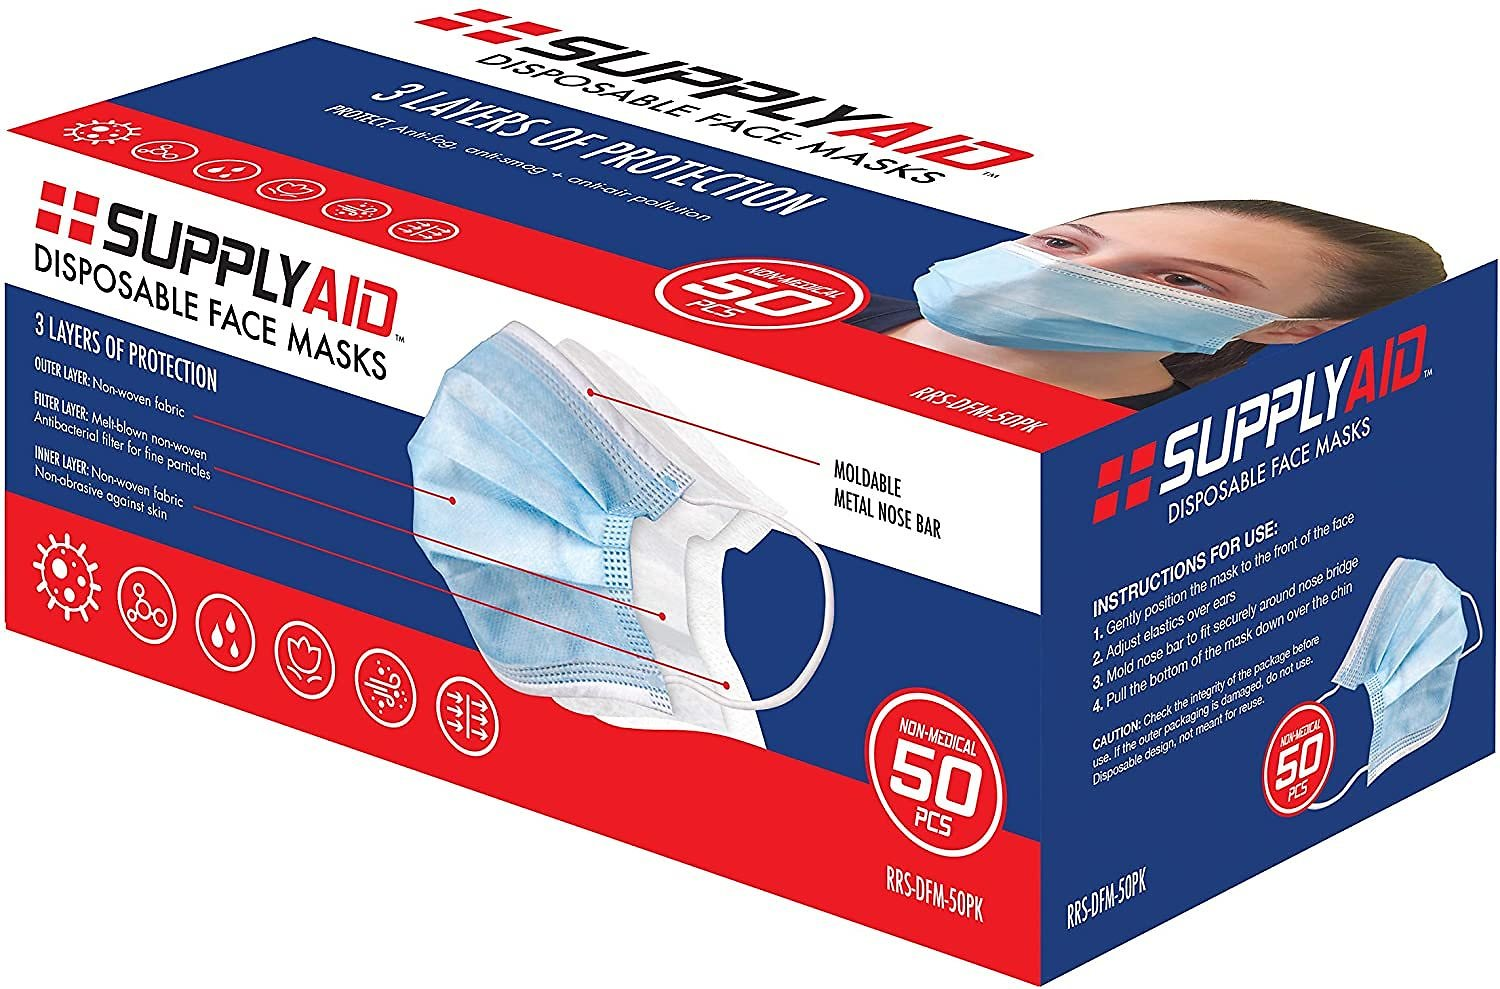 50 Count SupplyAID RRS-DFM-50PK Disposable 3-Layer Face Mask, 3-Ply, Blue, White